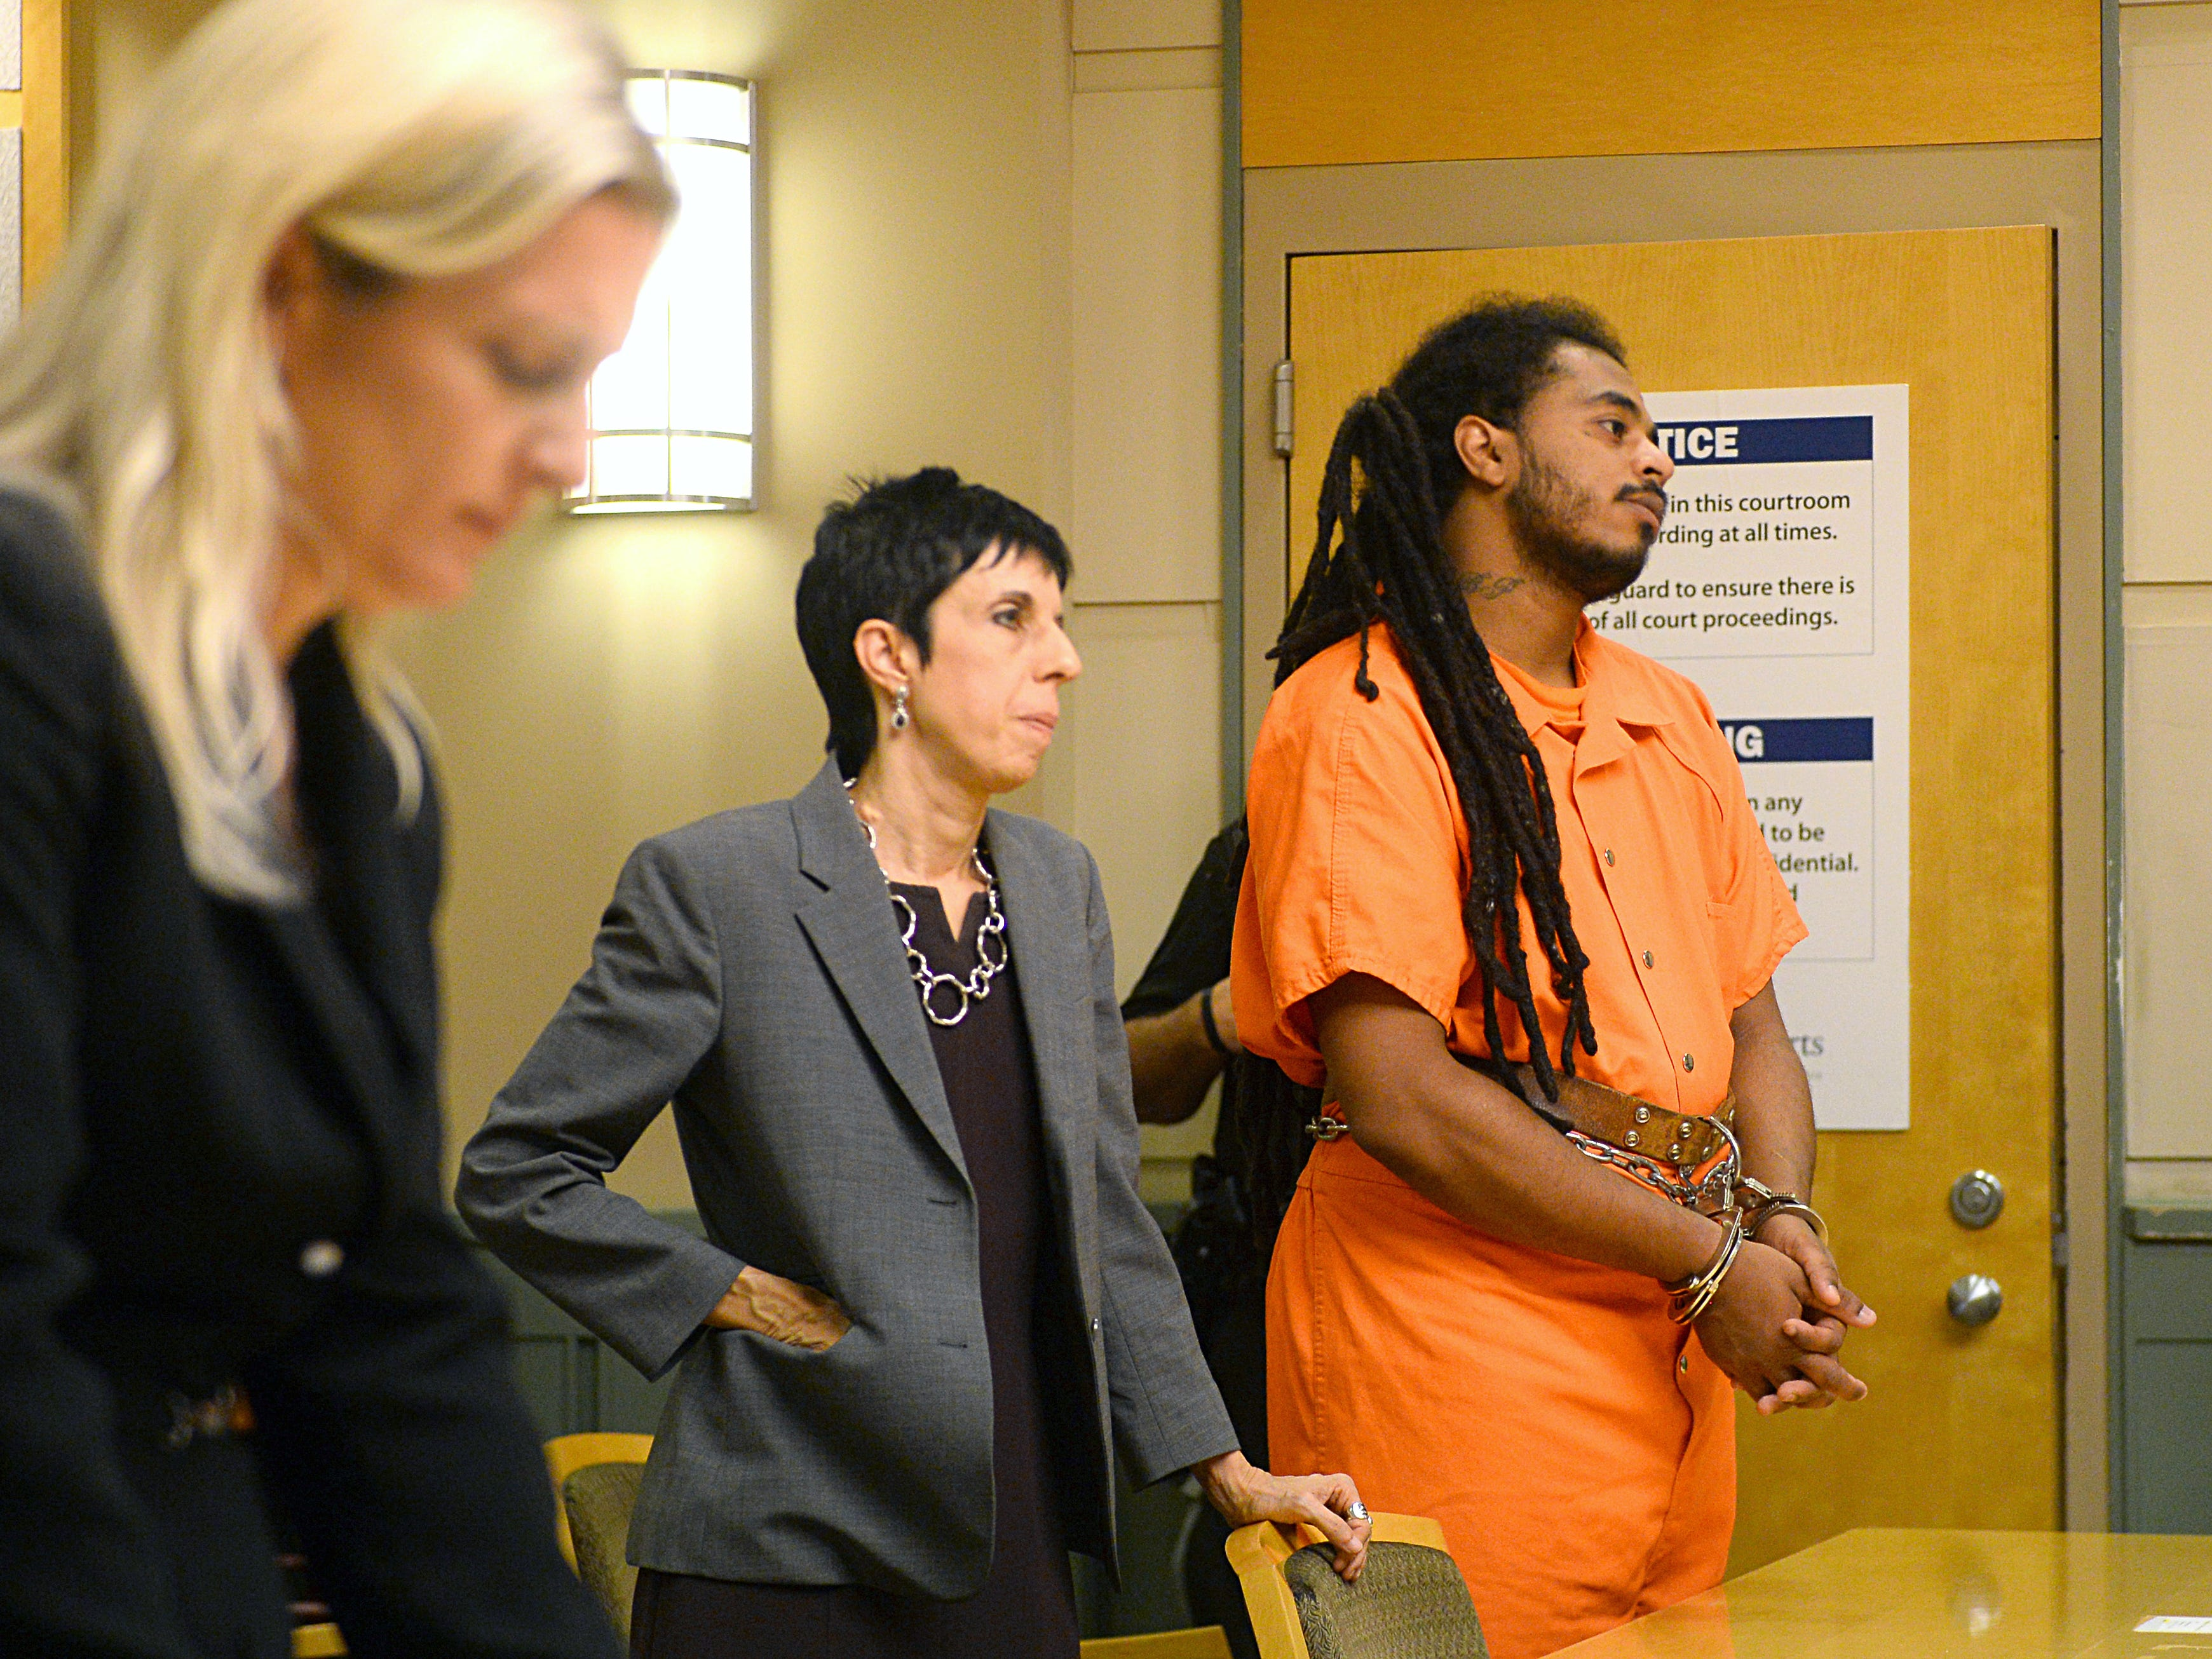 Michael L. Elliott, 25, stands with his attorney, Teresa M. Ganim, during a pre-trial detention hearing on Thursday, August 30. Elliott has been charged with murder for the killing of 9-year-old Jennifer Trejo.